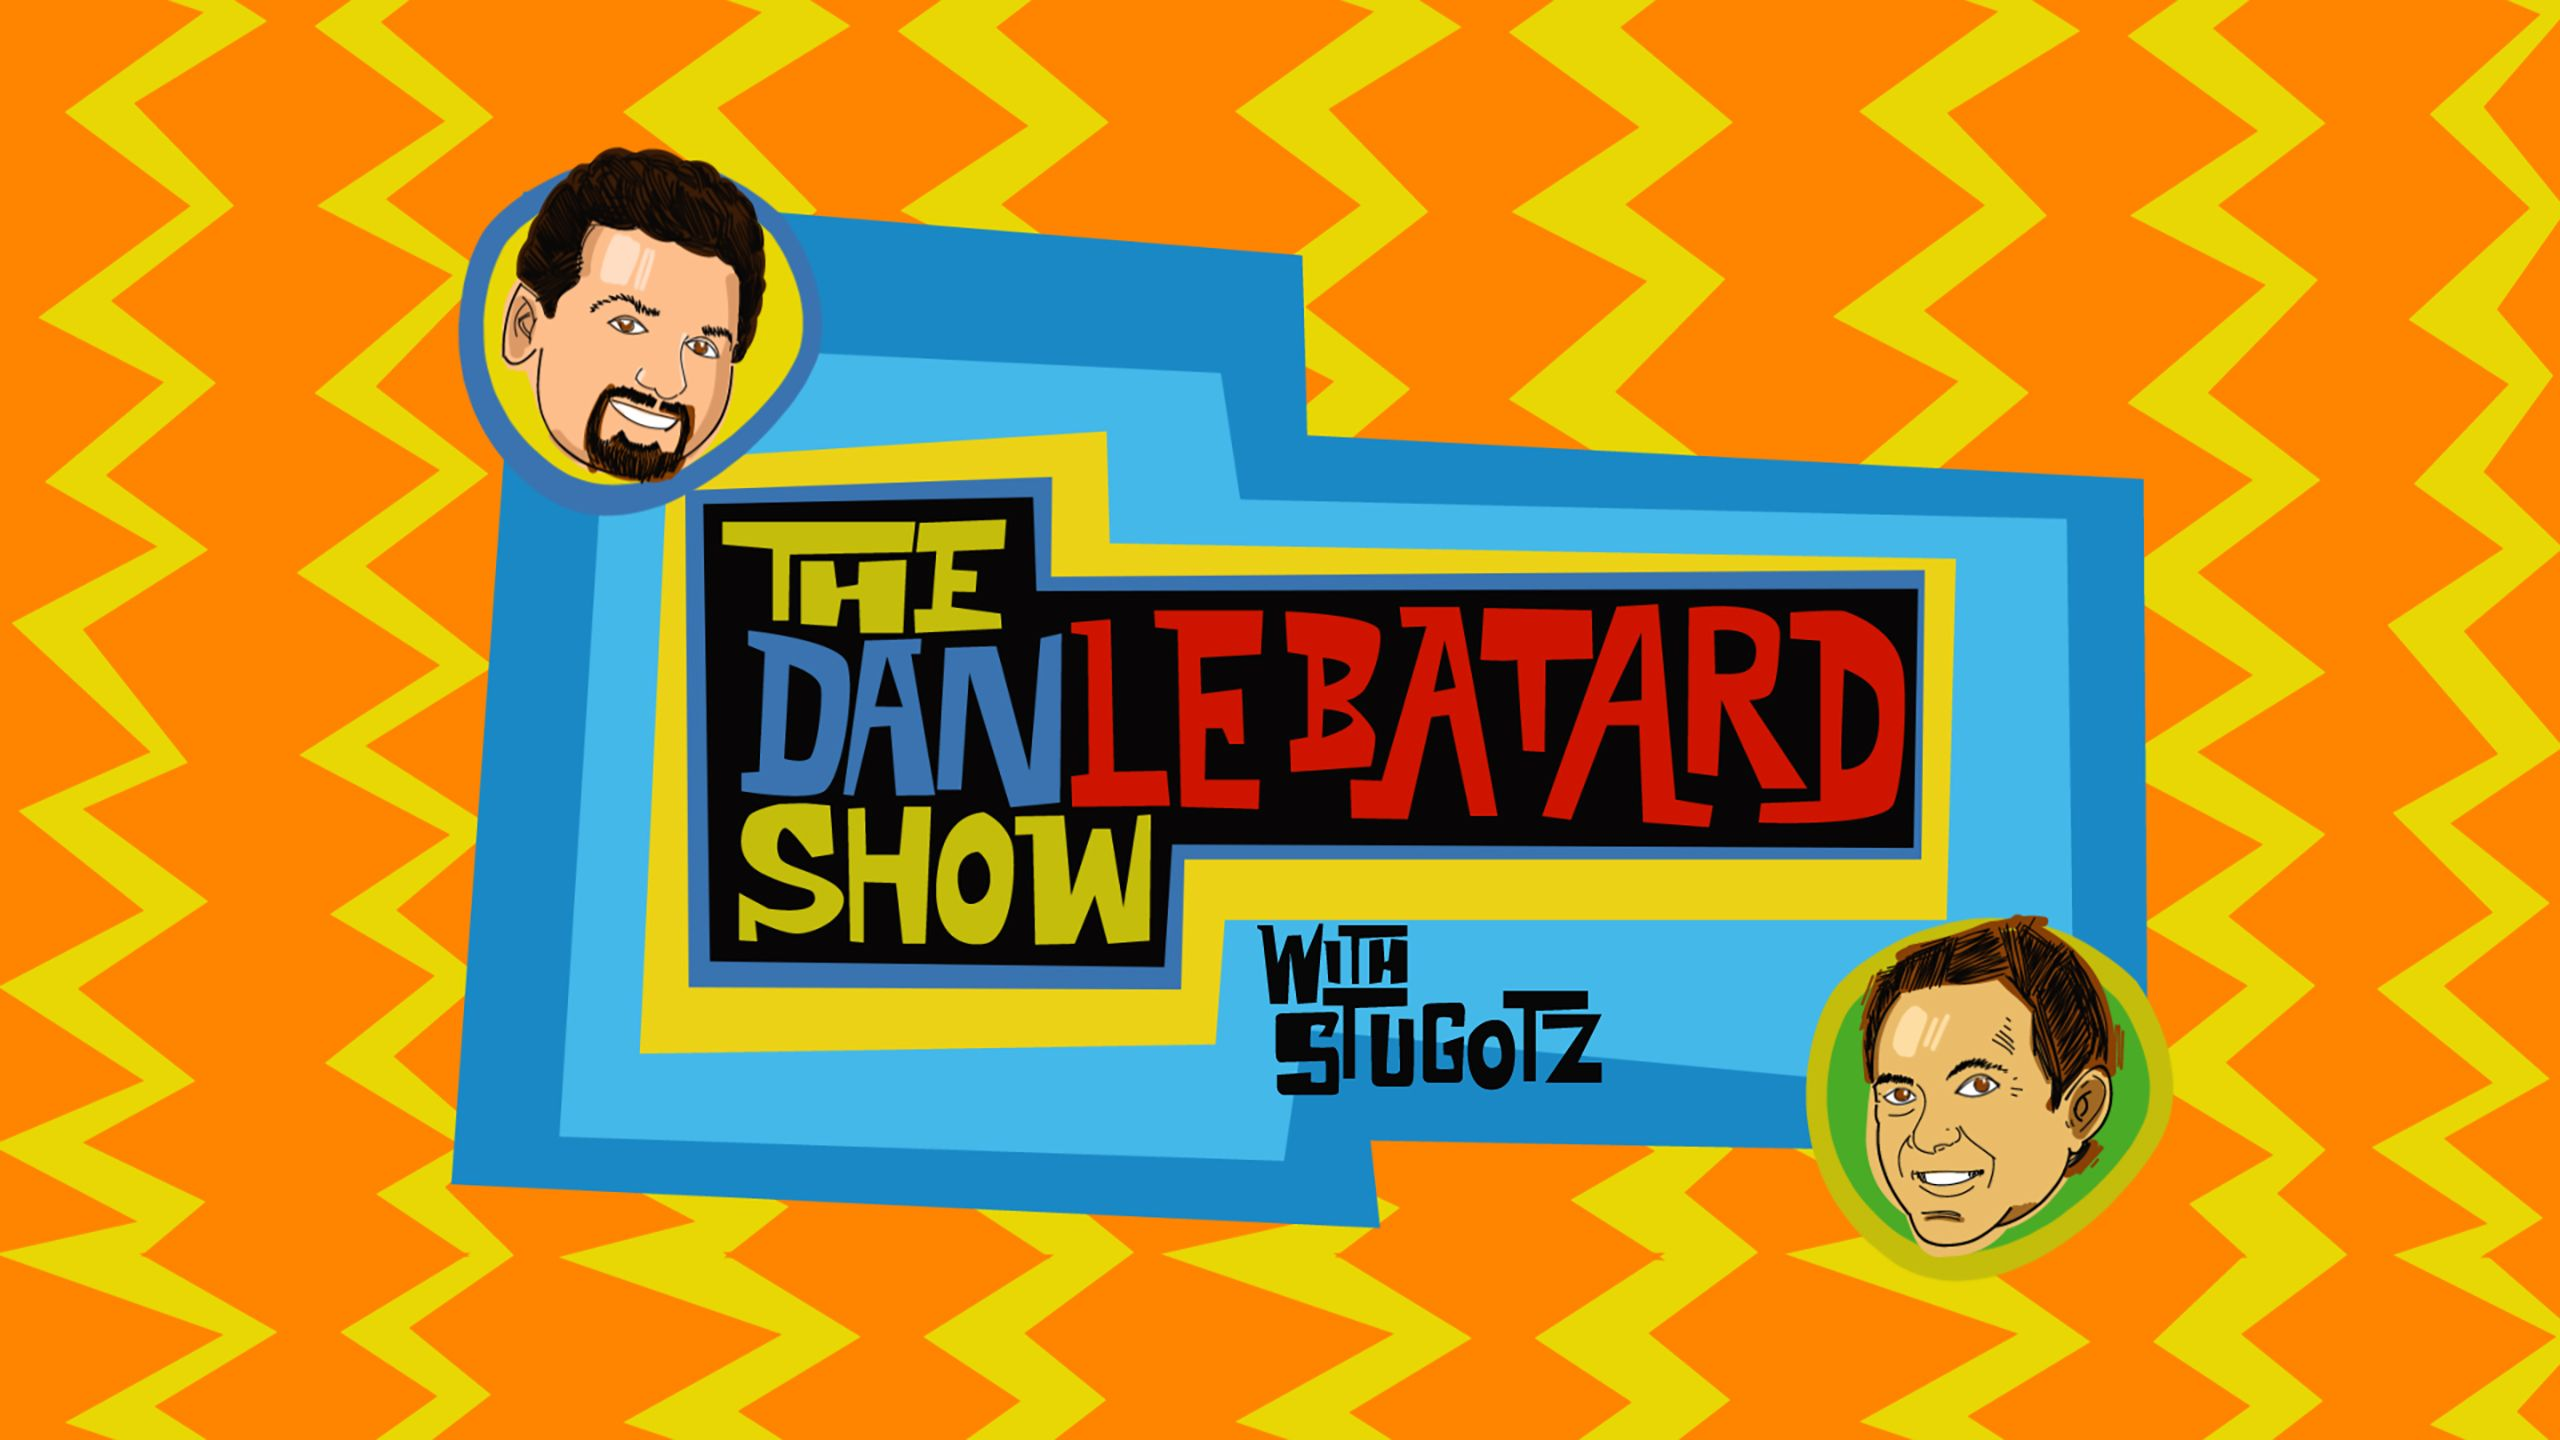 Mon, 6/18 - The Dan Le Batard Show with Stugotz Presented by Progressive